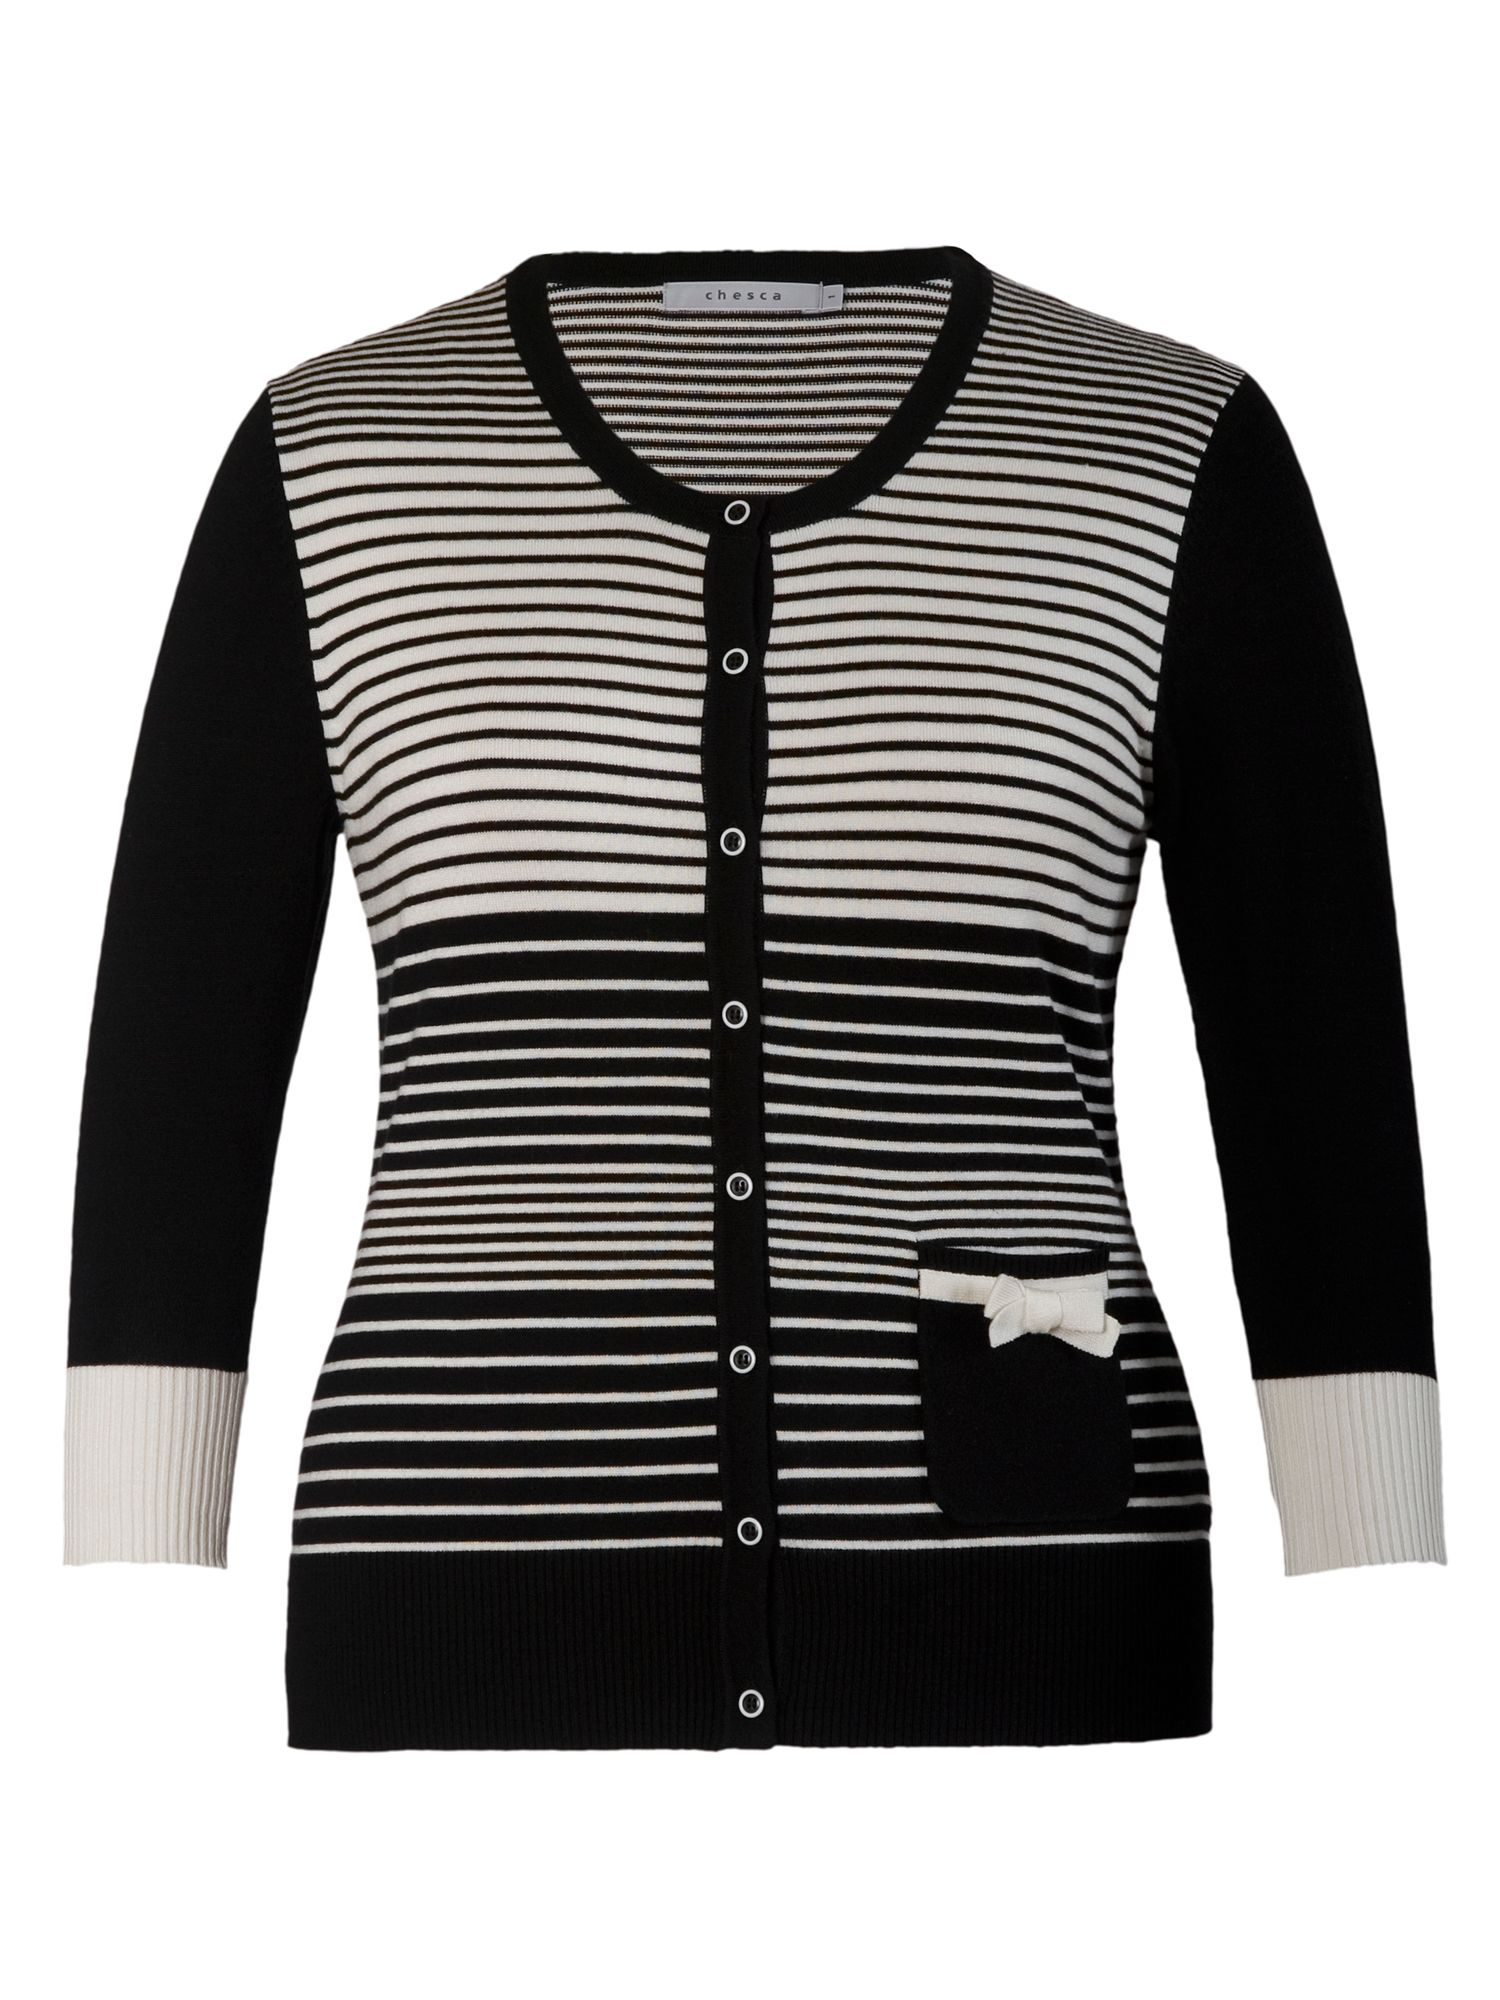 Graduated striped cardigan